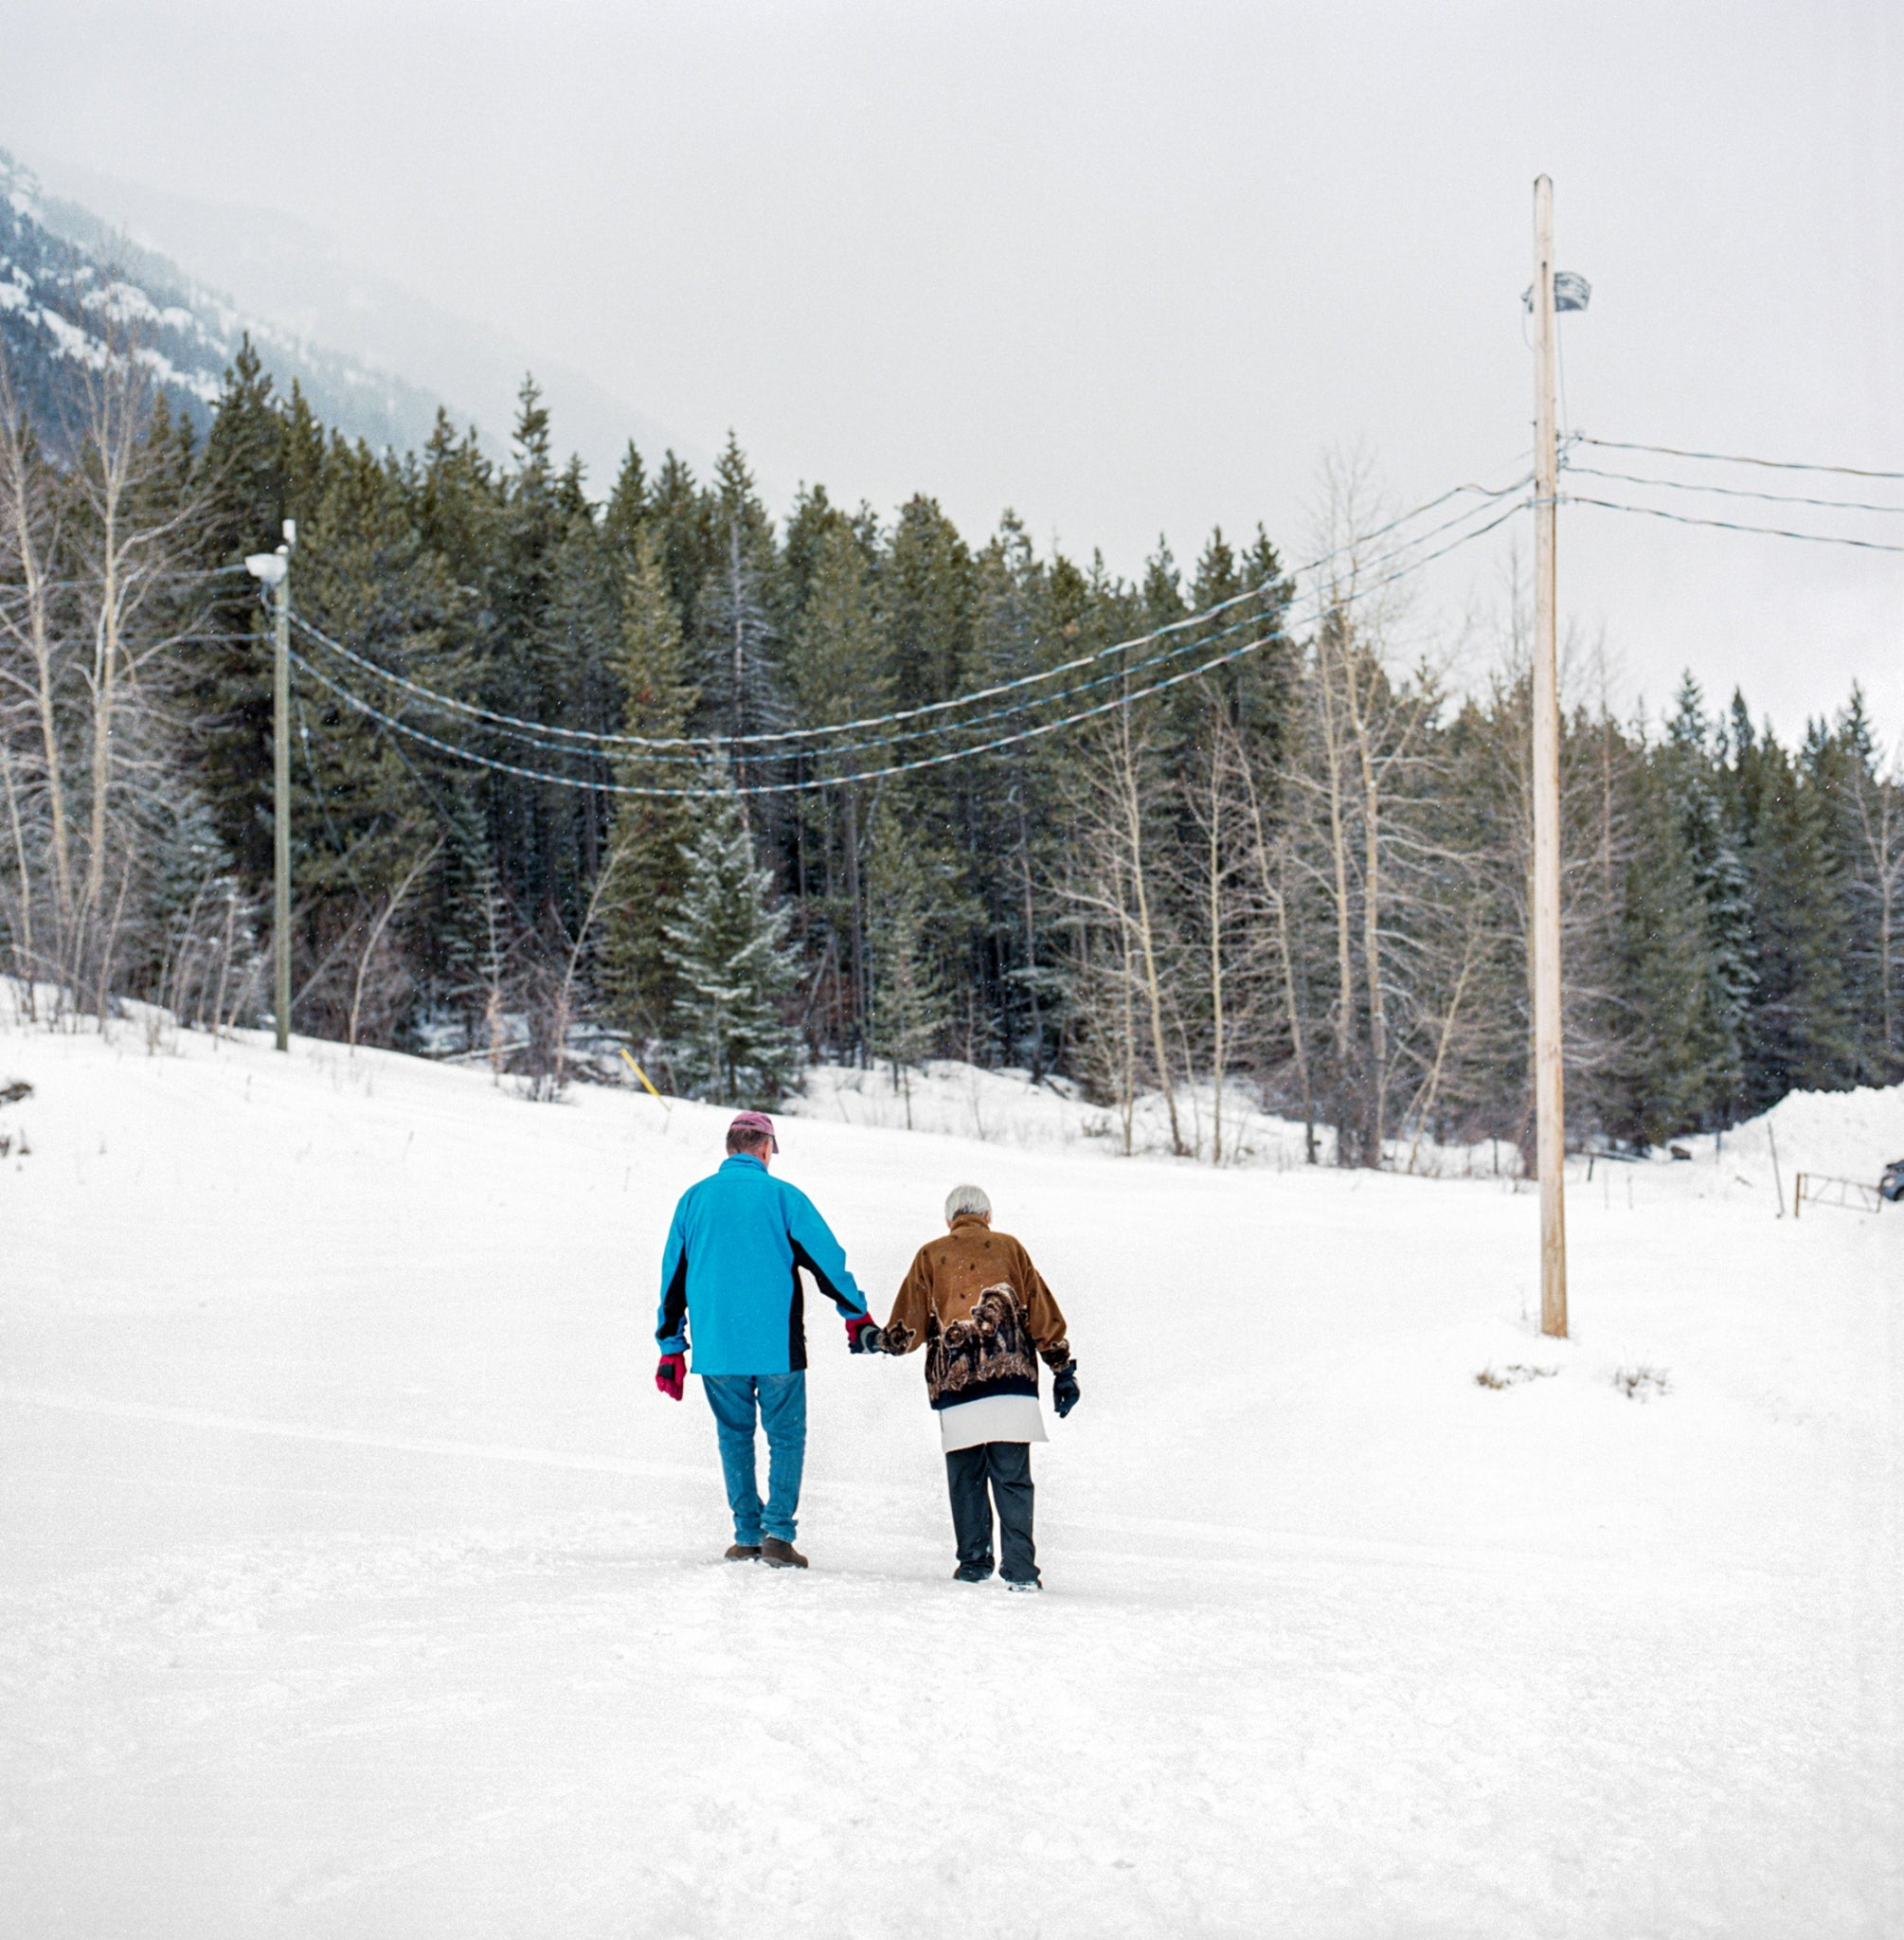 An elderly couple walks back to the parking lot after visiting Wapiti Ski Club. Photo: Kari Medig